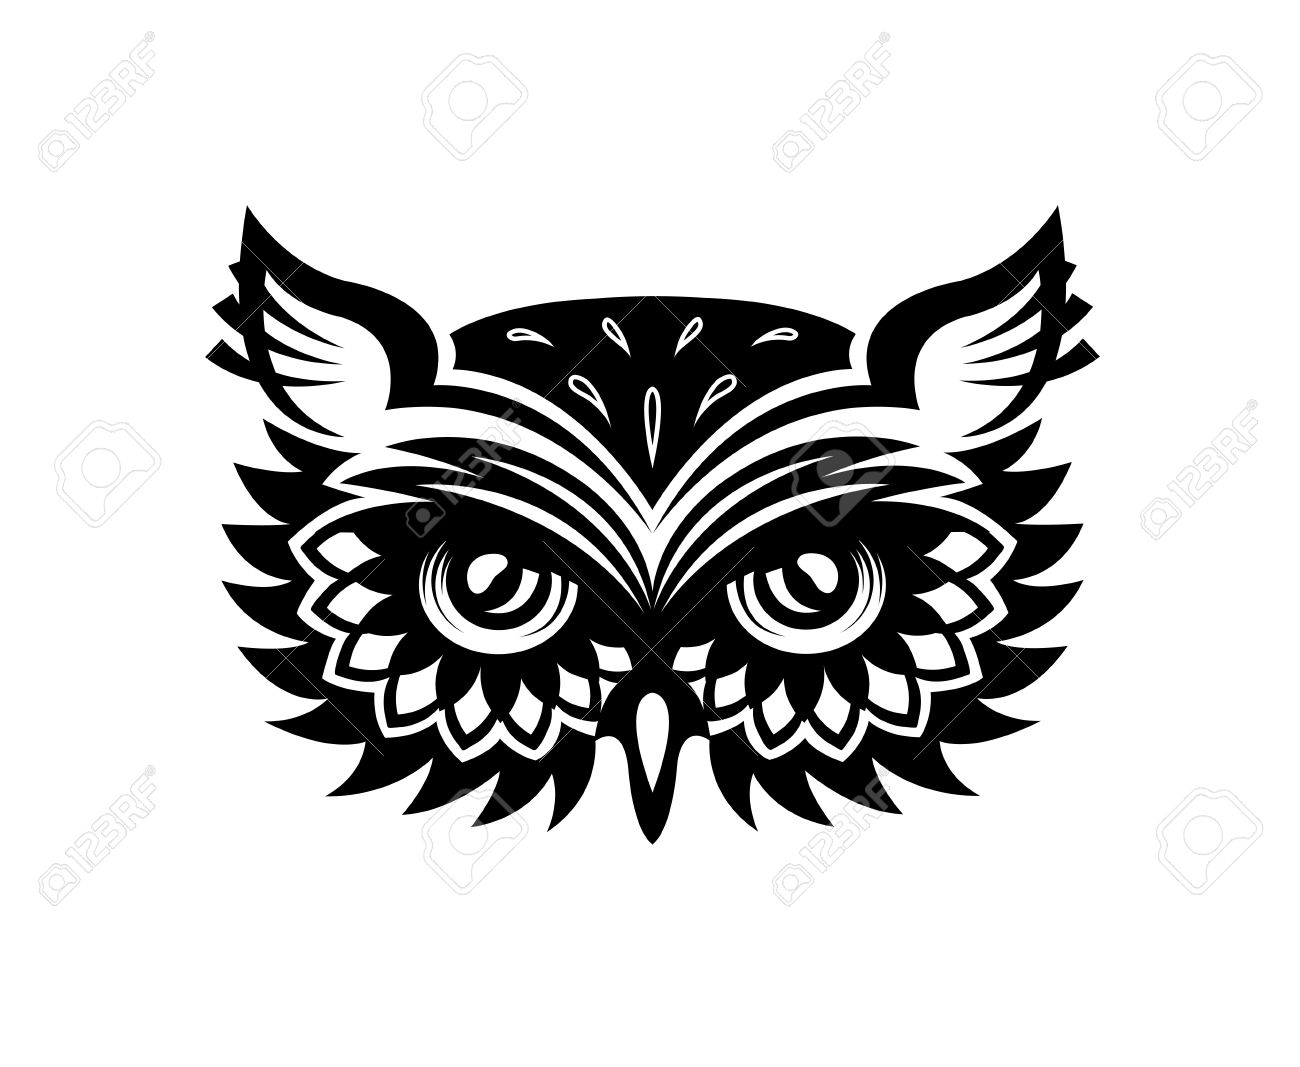 black and white wise old horned owl head with big eyes and feather